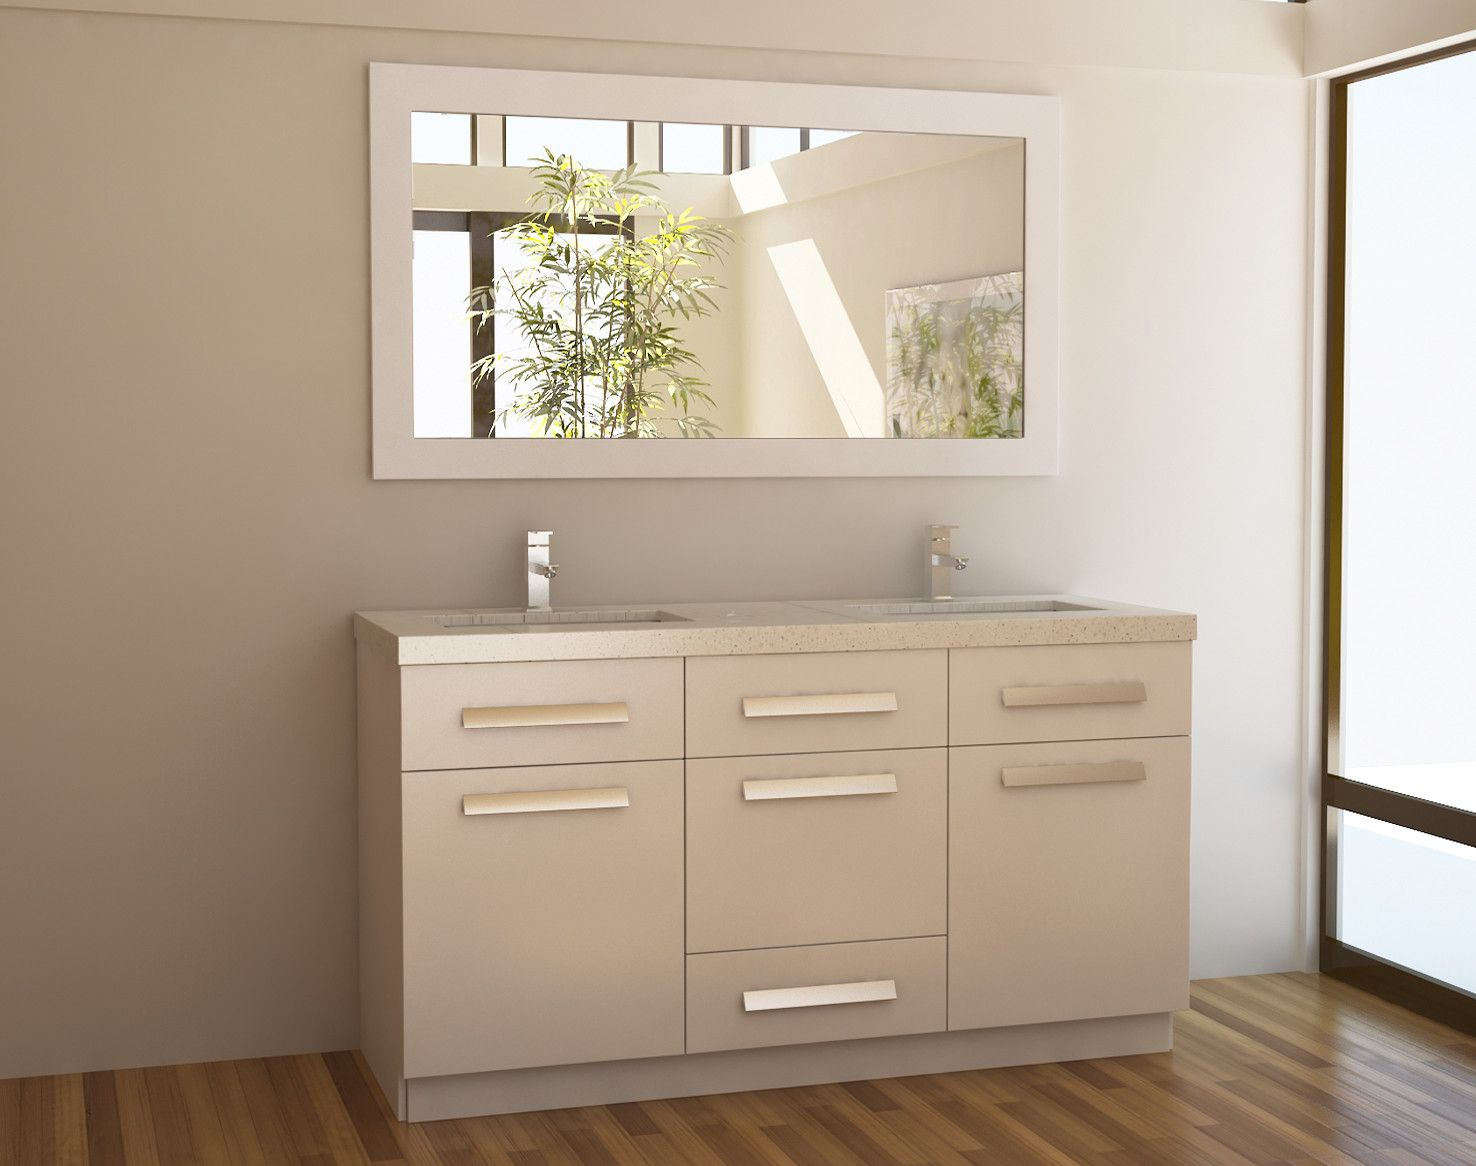 55+ 60 Inch Vanity Cabinet   Kitchen Nook Lighting Ideas Check More At Http: